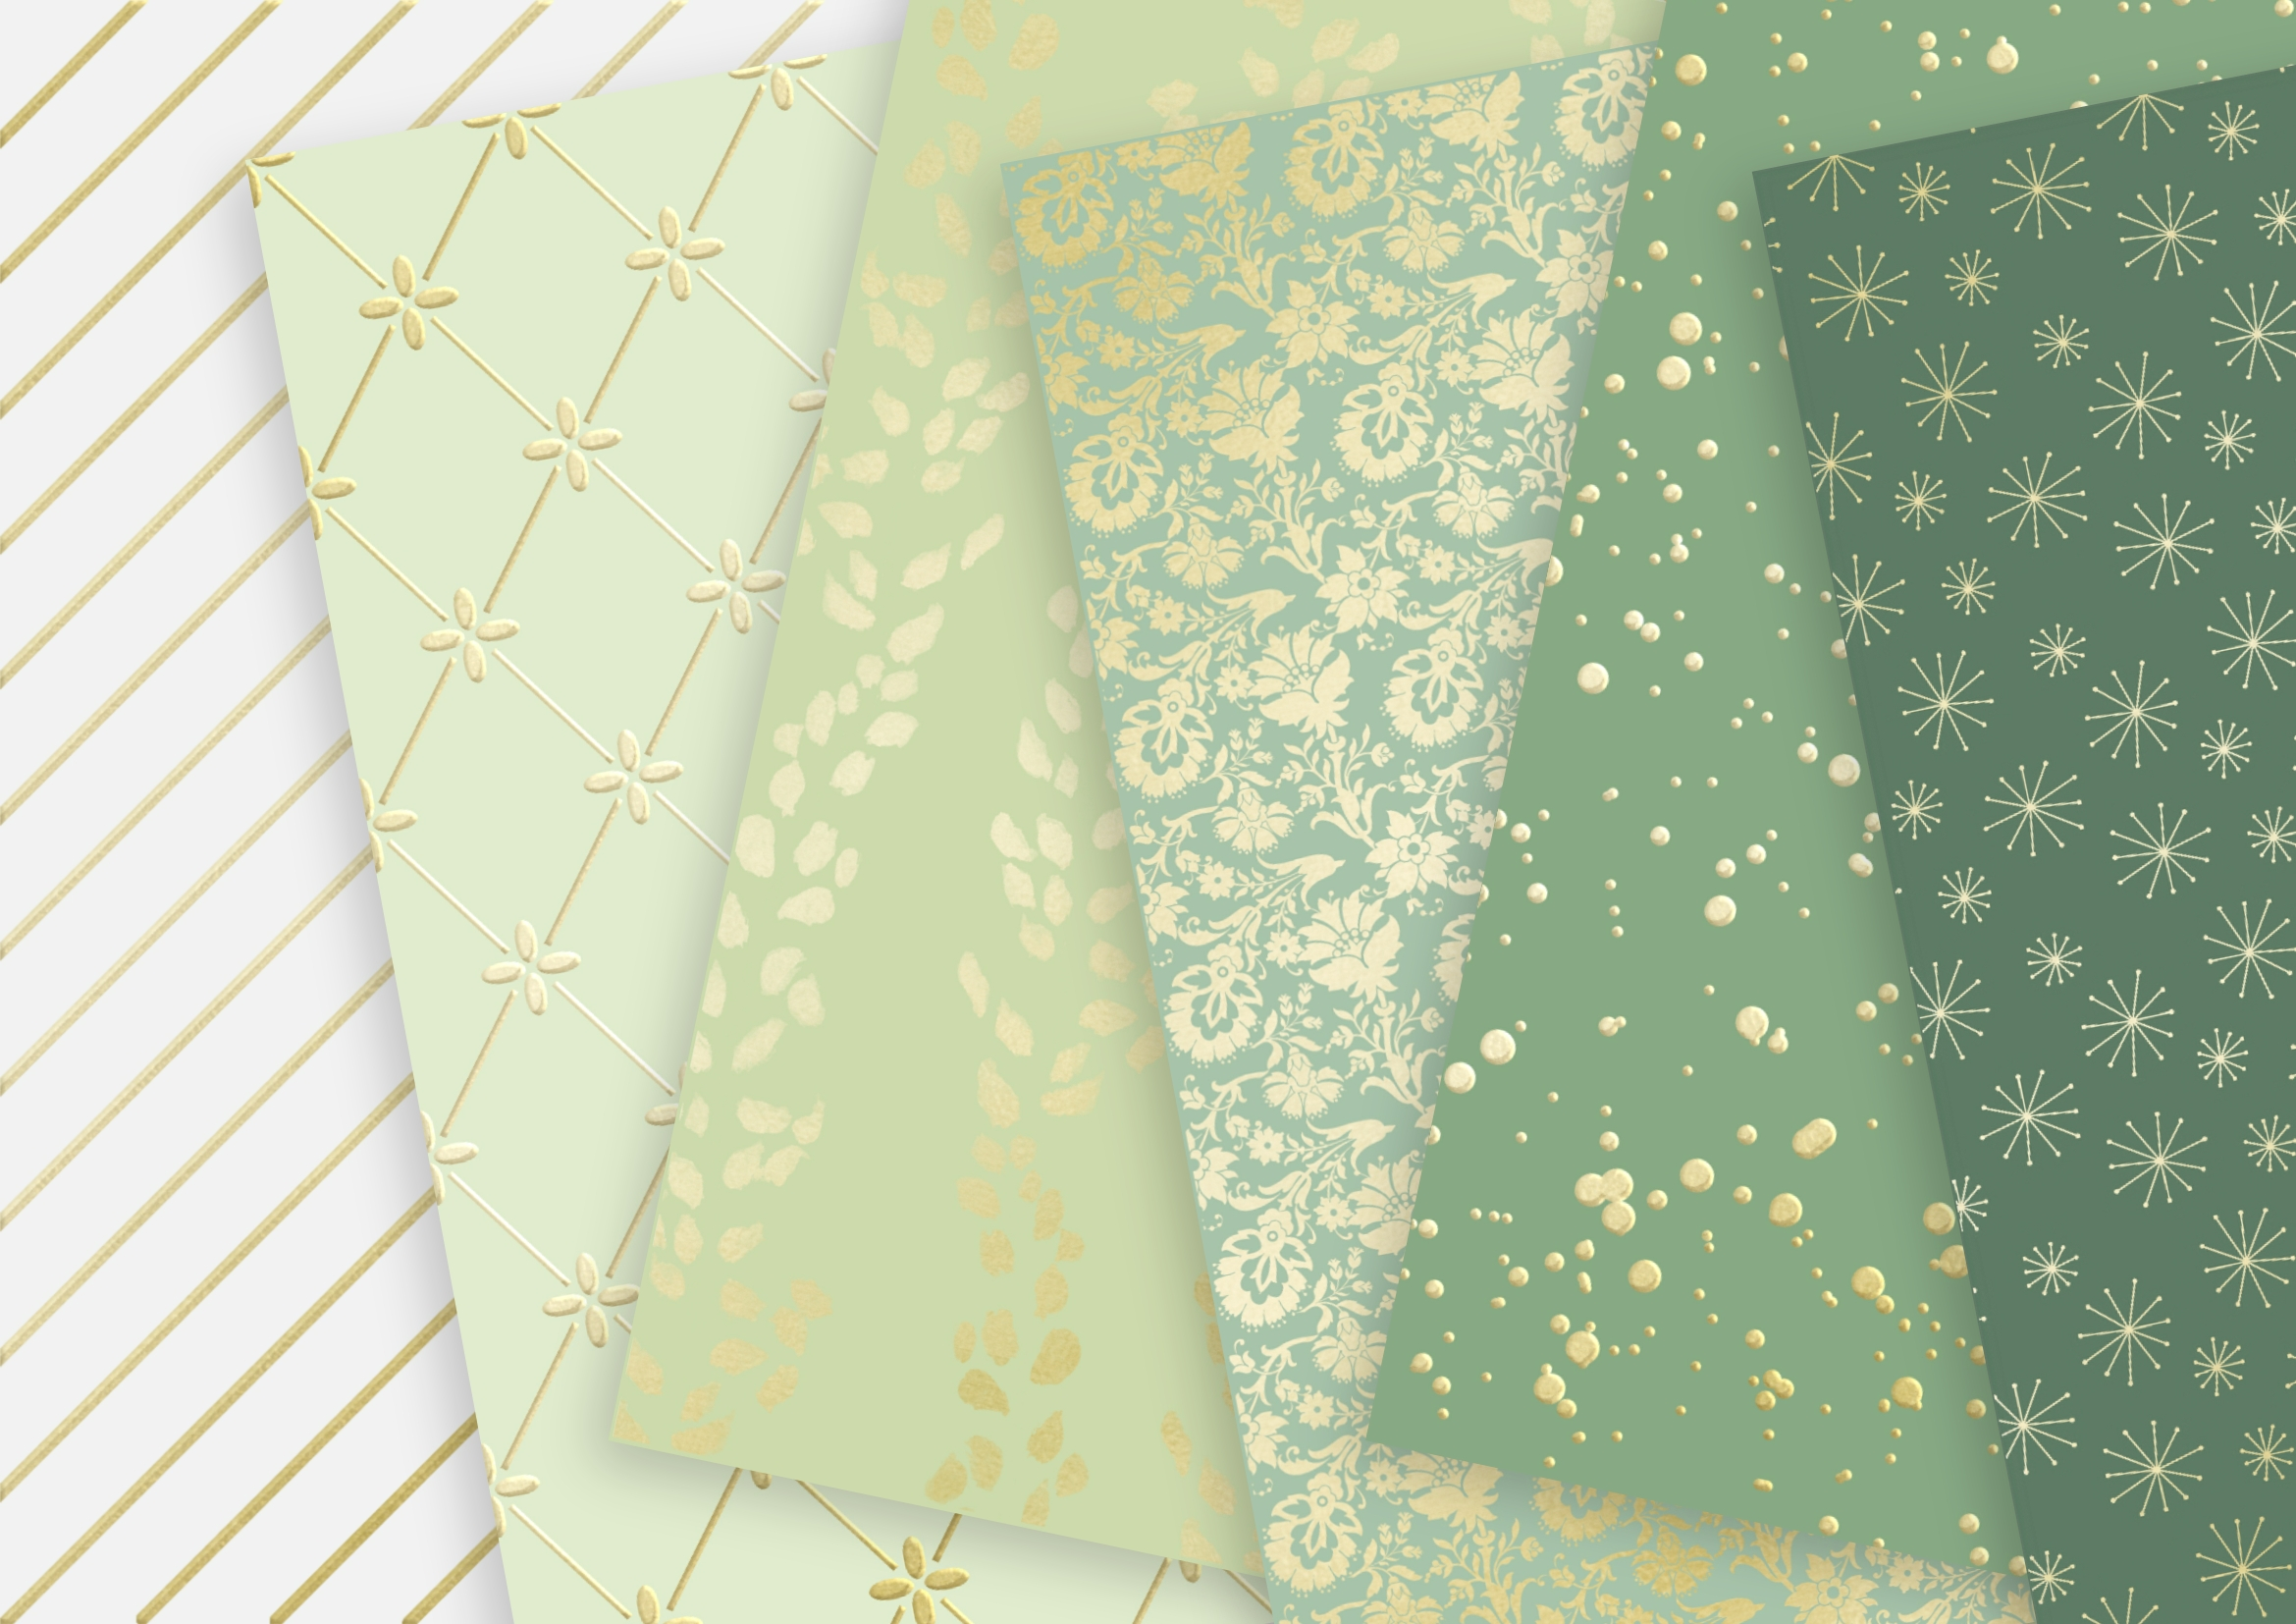 Fern White and Soft Gold Digital Paper example image 3